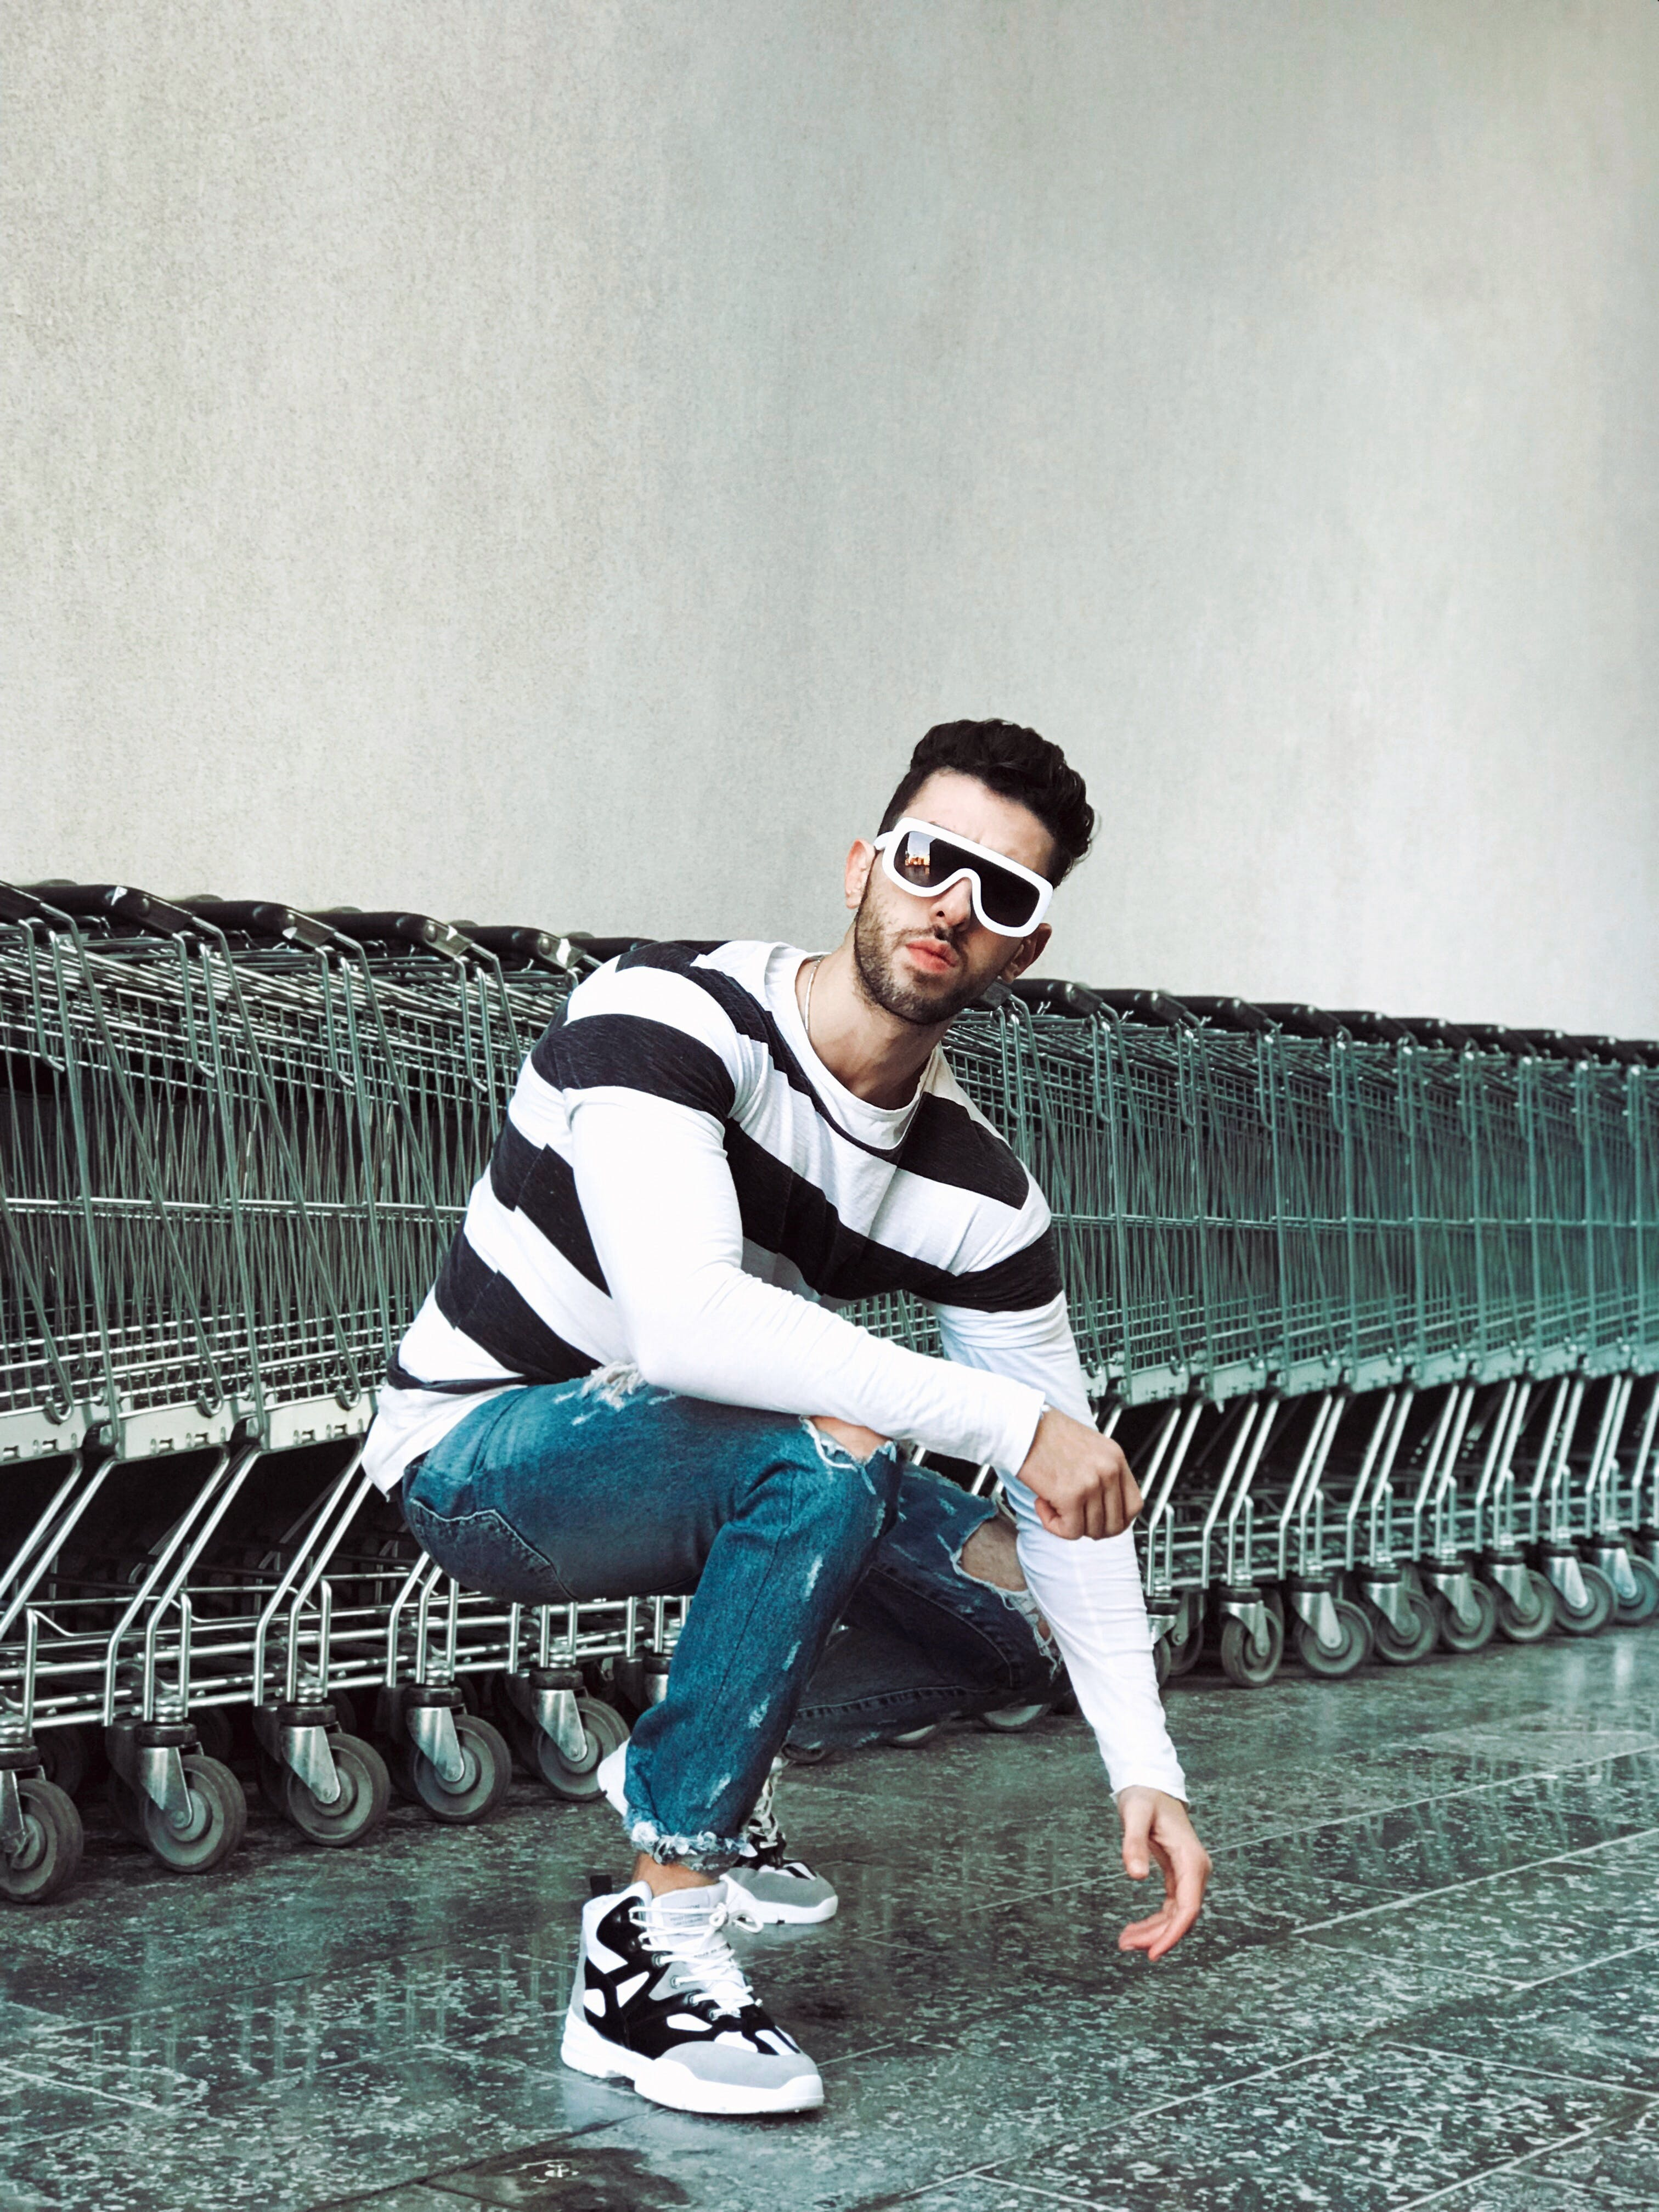 Photo of Man Squat Position in Front of Shopping Carts